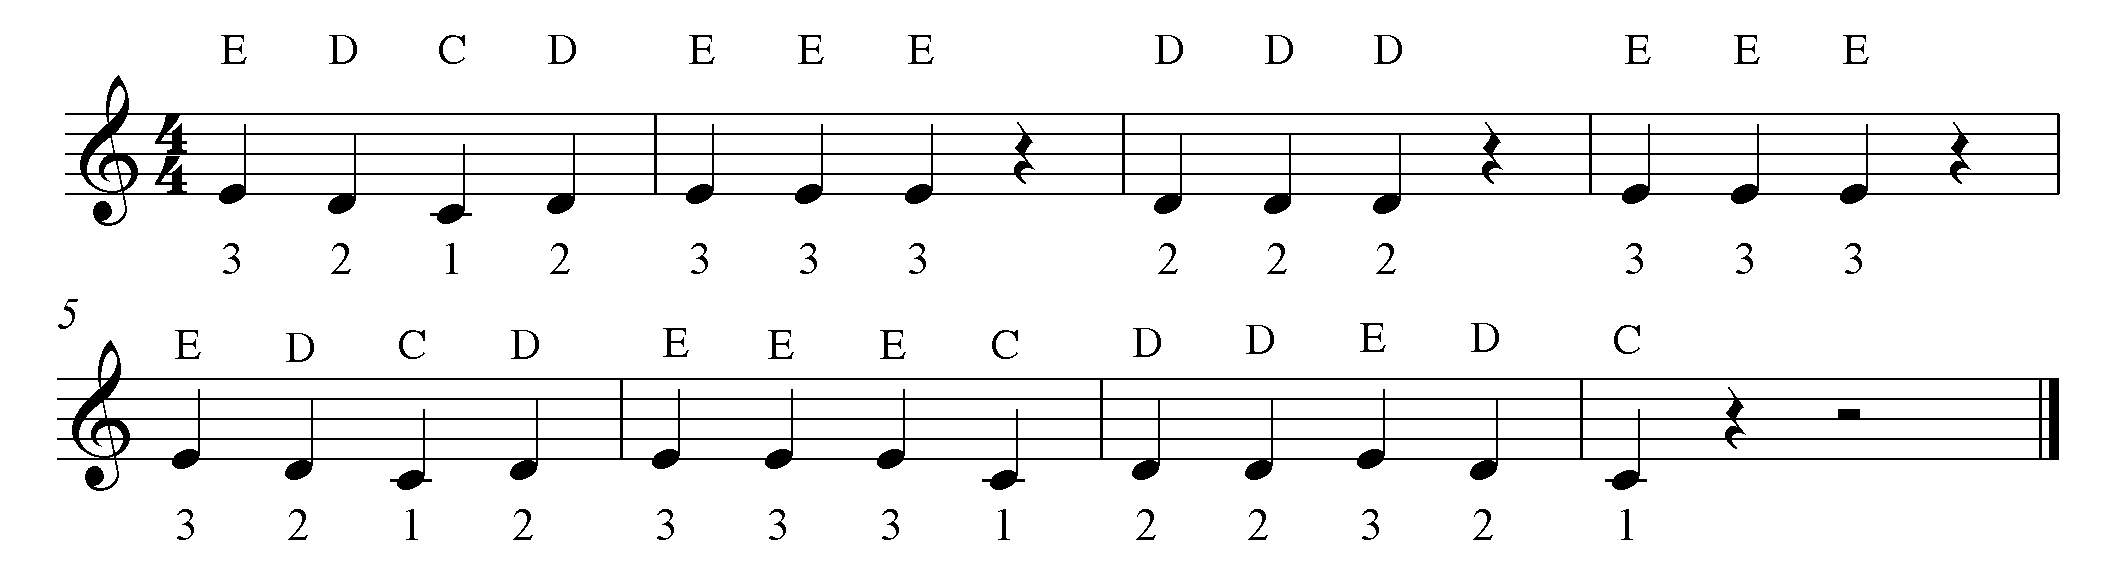 23  60 Teaching By Finger Number  Note Letter